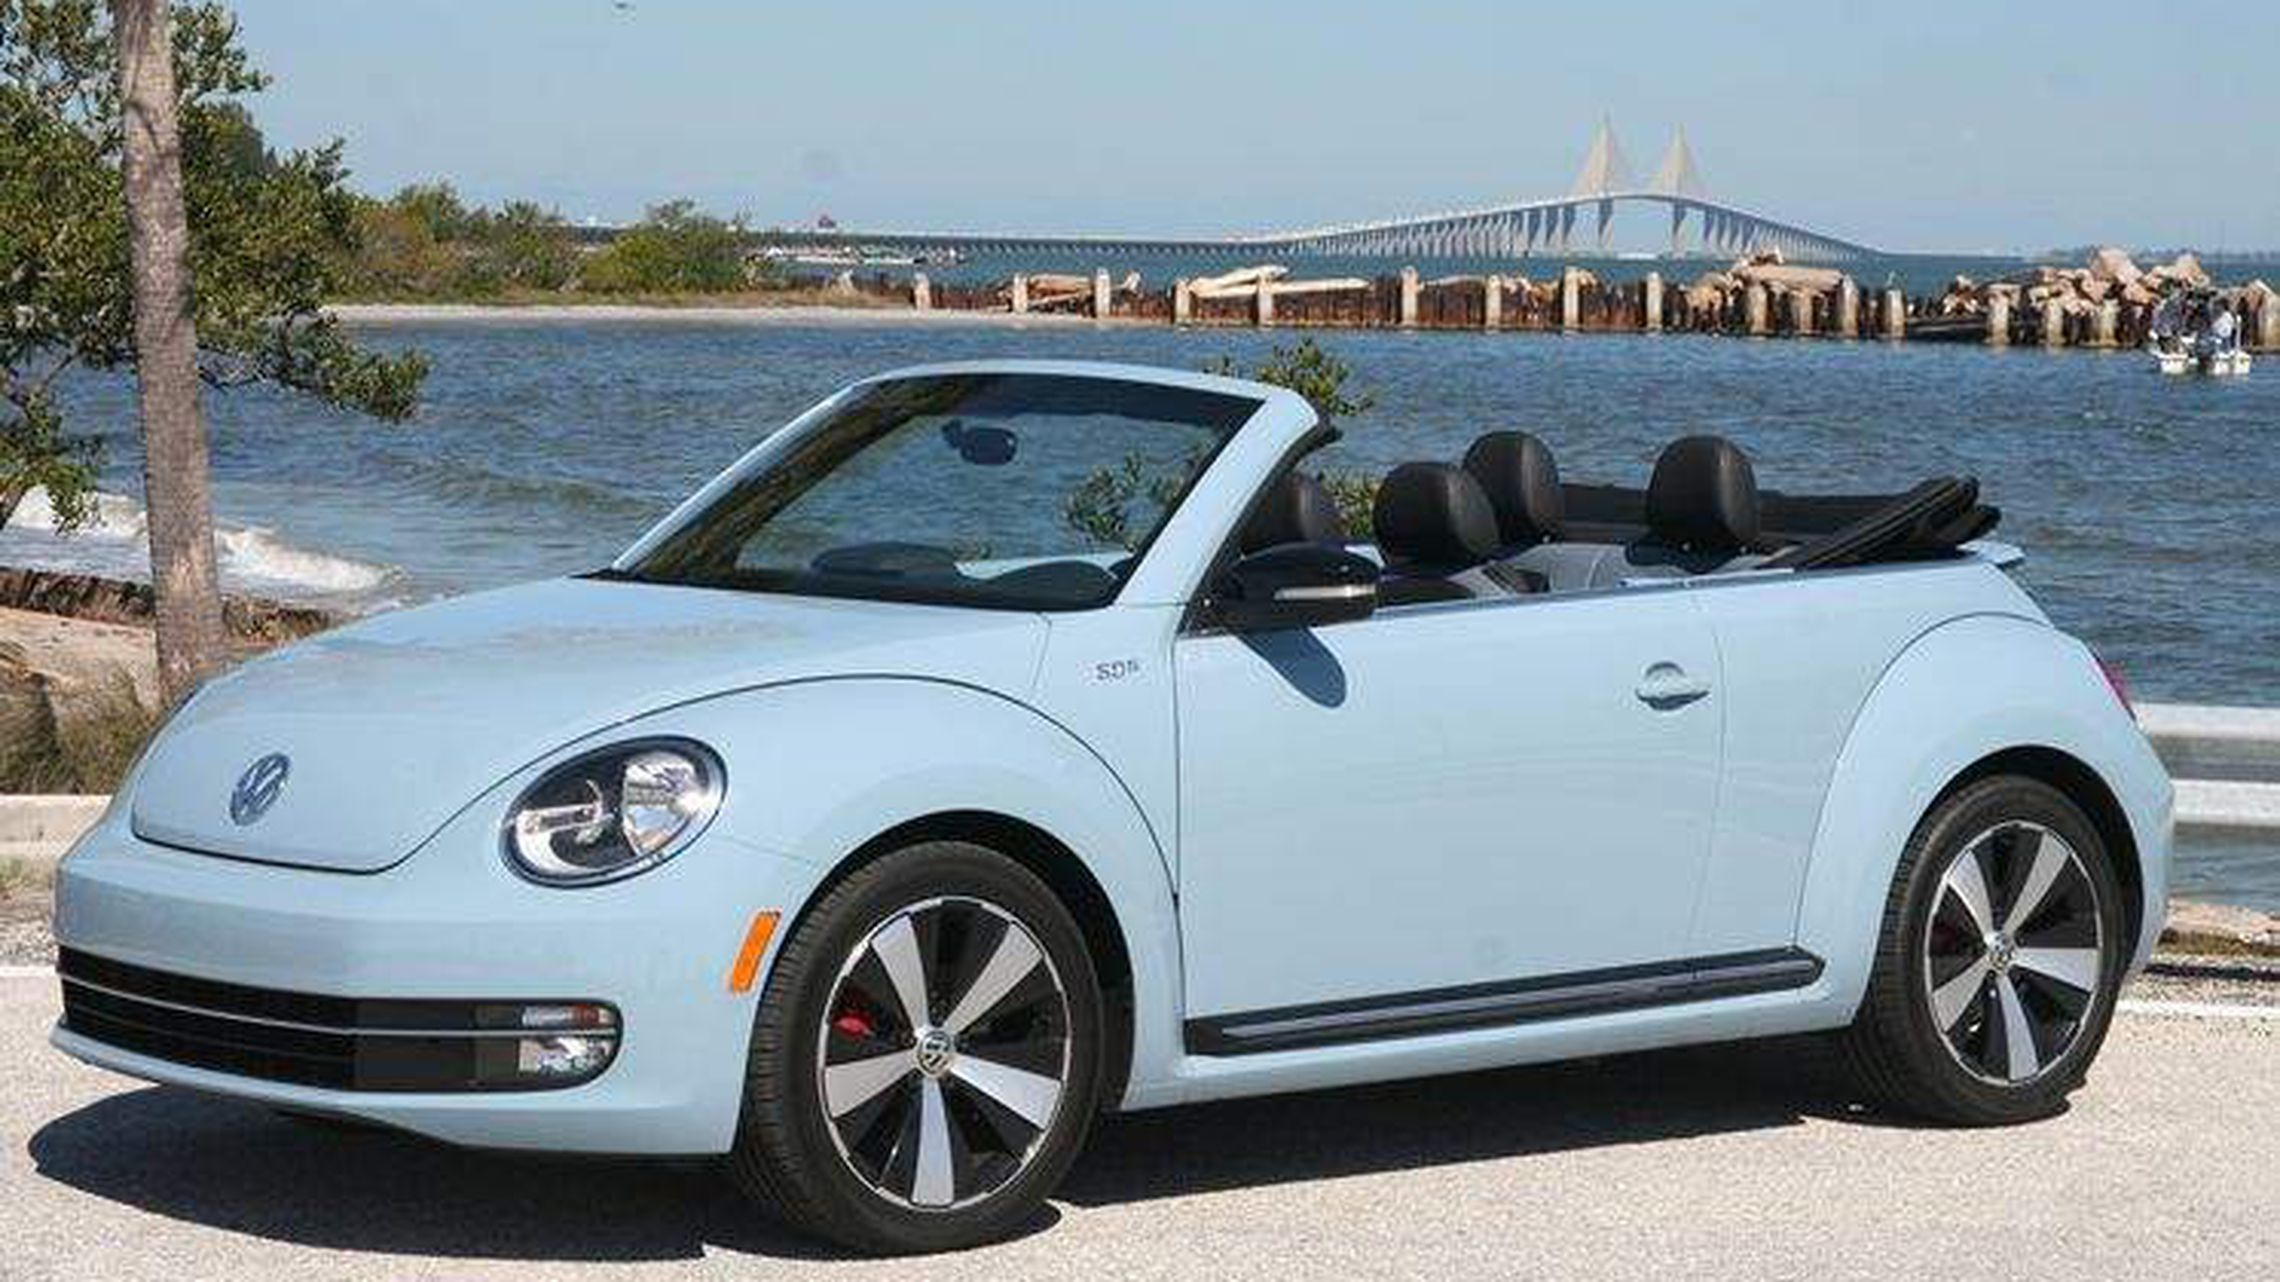 The Daily Drivers 2013 Volkswagen Beetle Convertible Open For Excitement